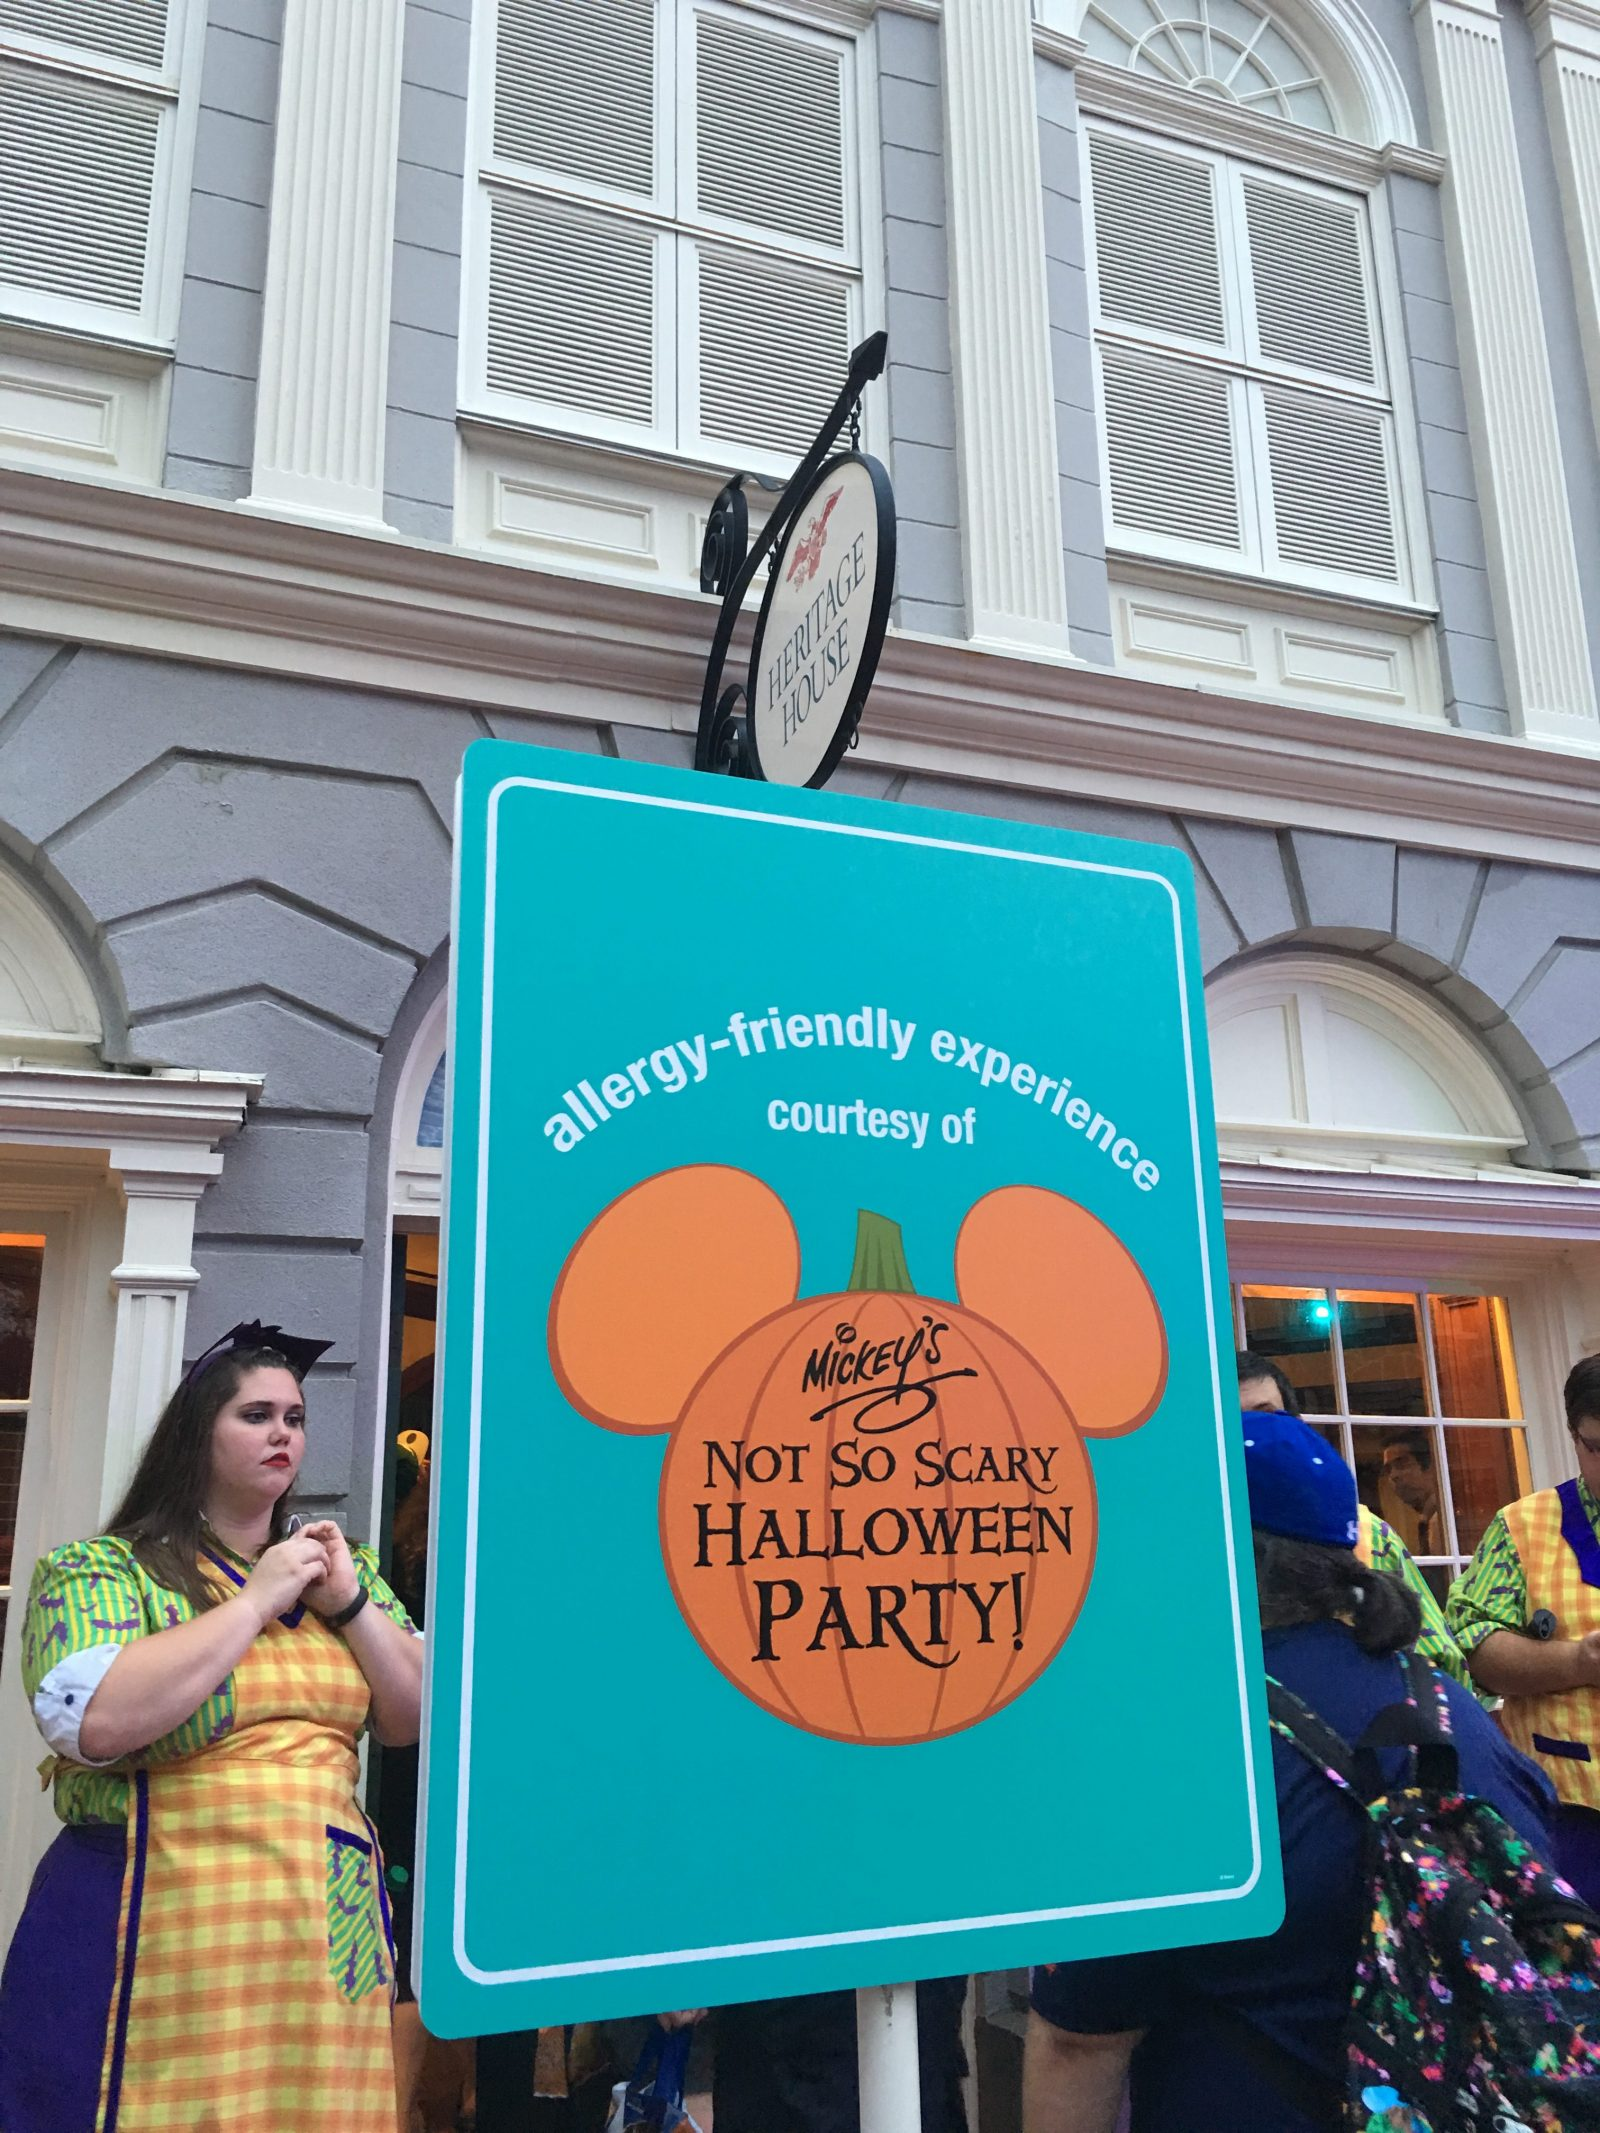 Mickey's Not So Scary Halloween Party 2016 - Allergy Friendly Experience - Heritage House Sign